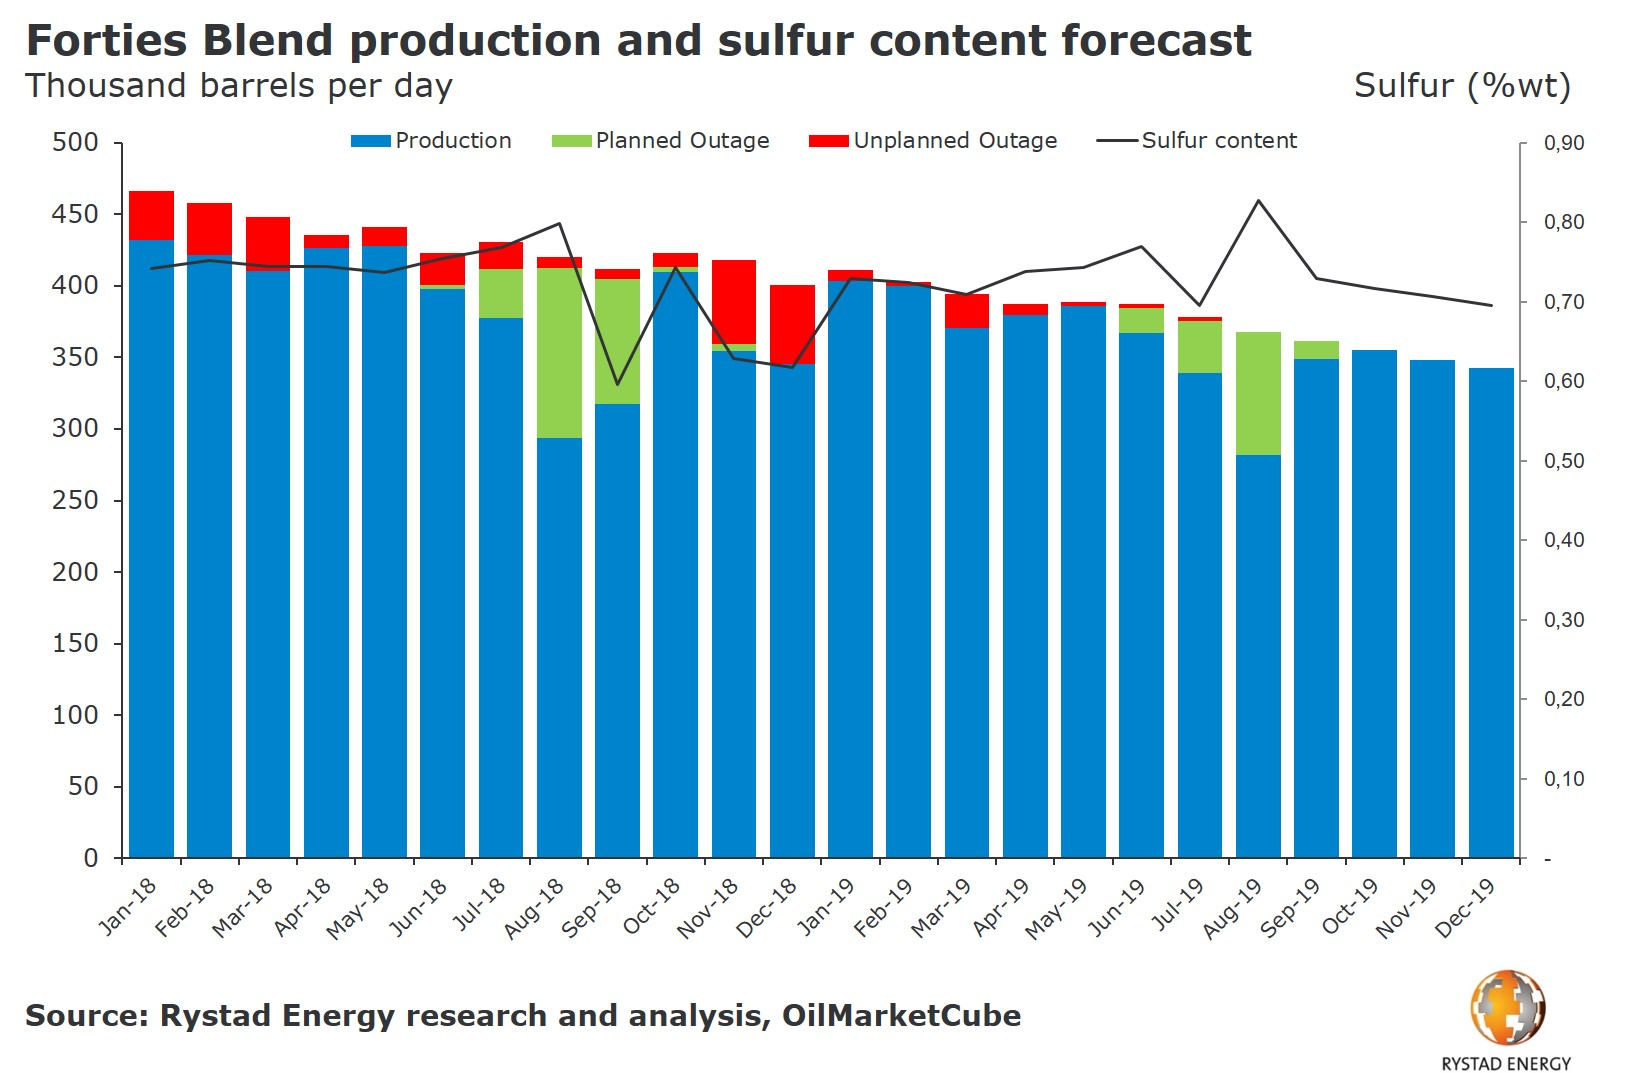 A bar chart showing Forties Blend production and sulfur content forecast for 2018 and 2019